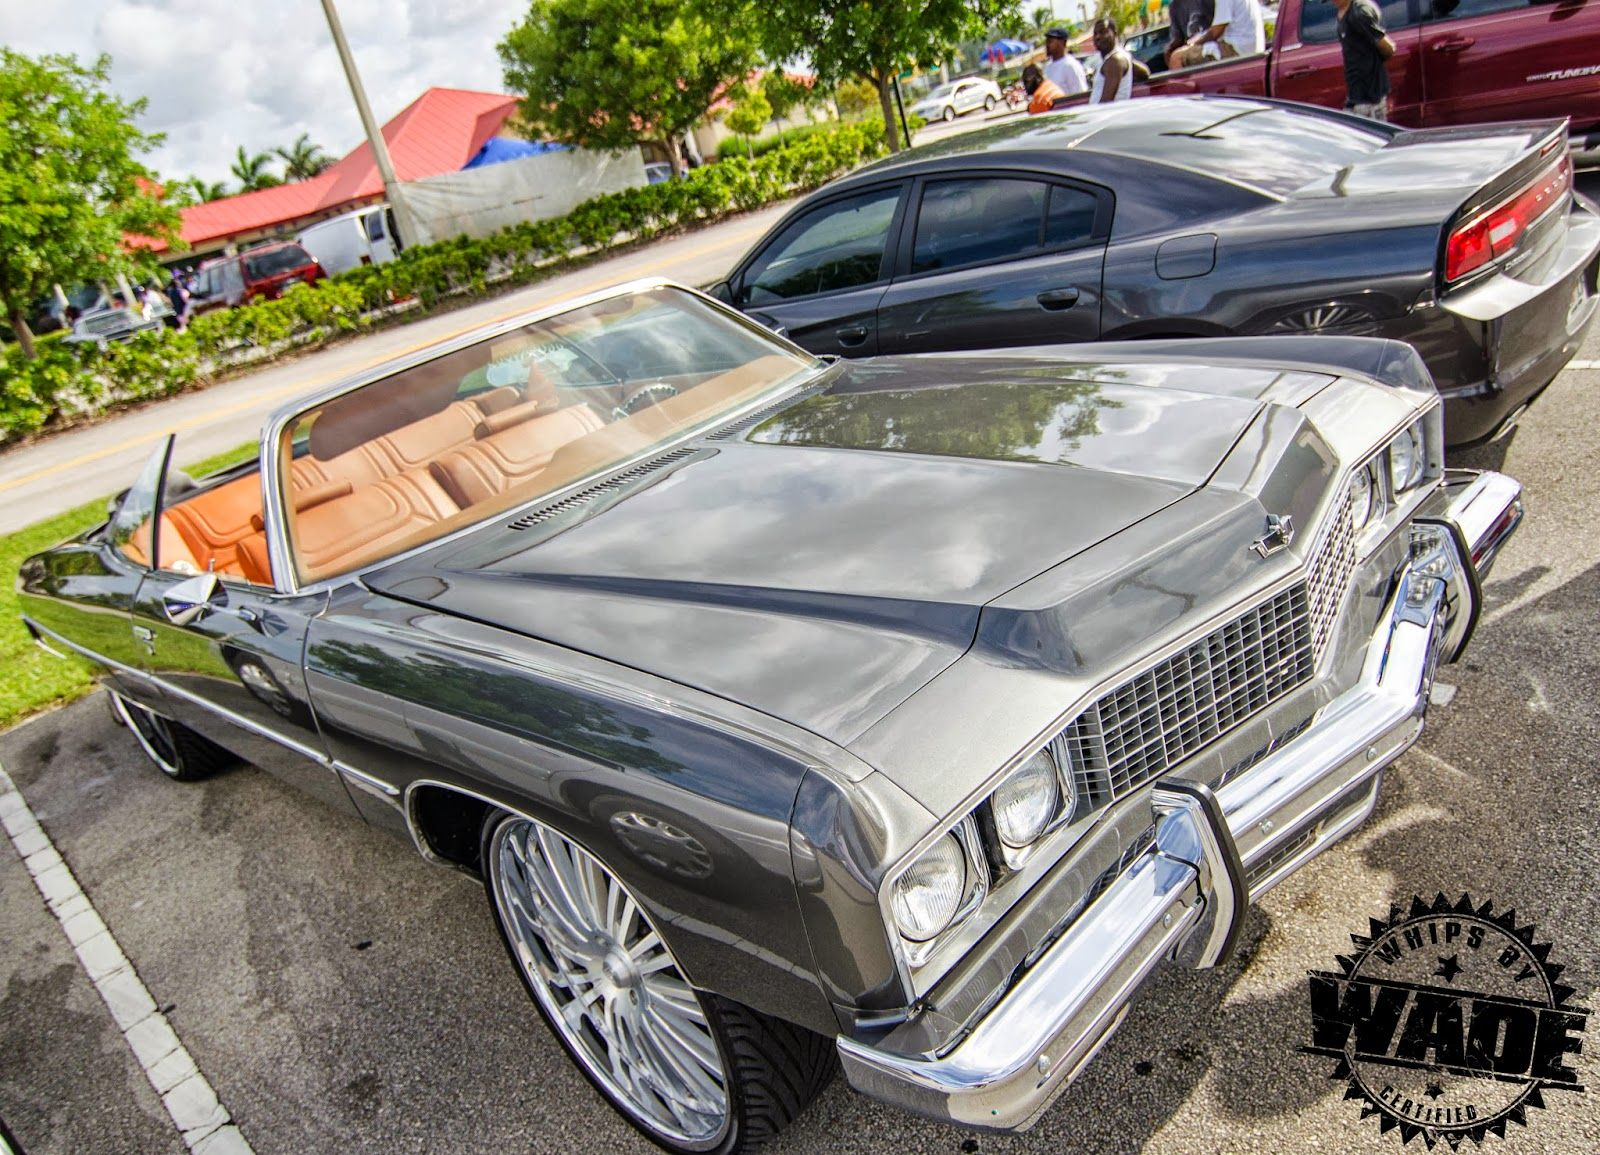 Whips by wade grey 1973 chevrolet caprice on 26 cor wheels